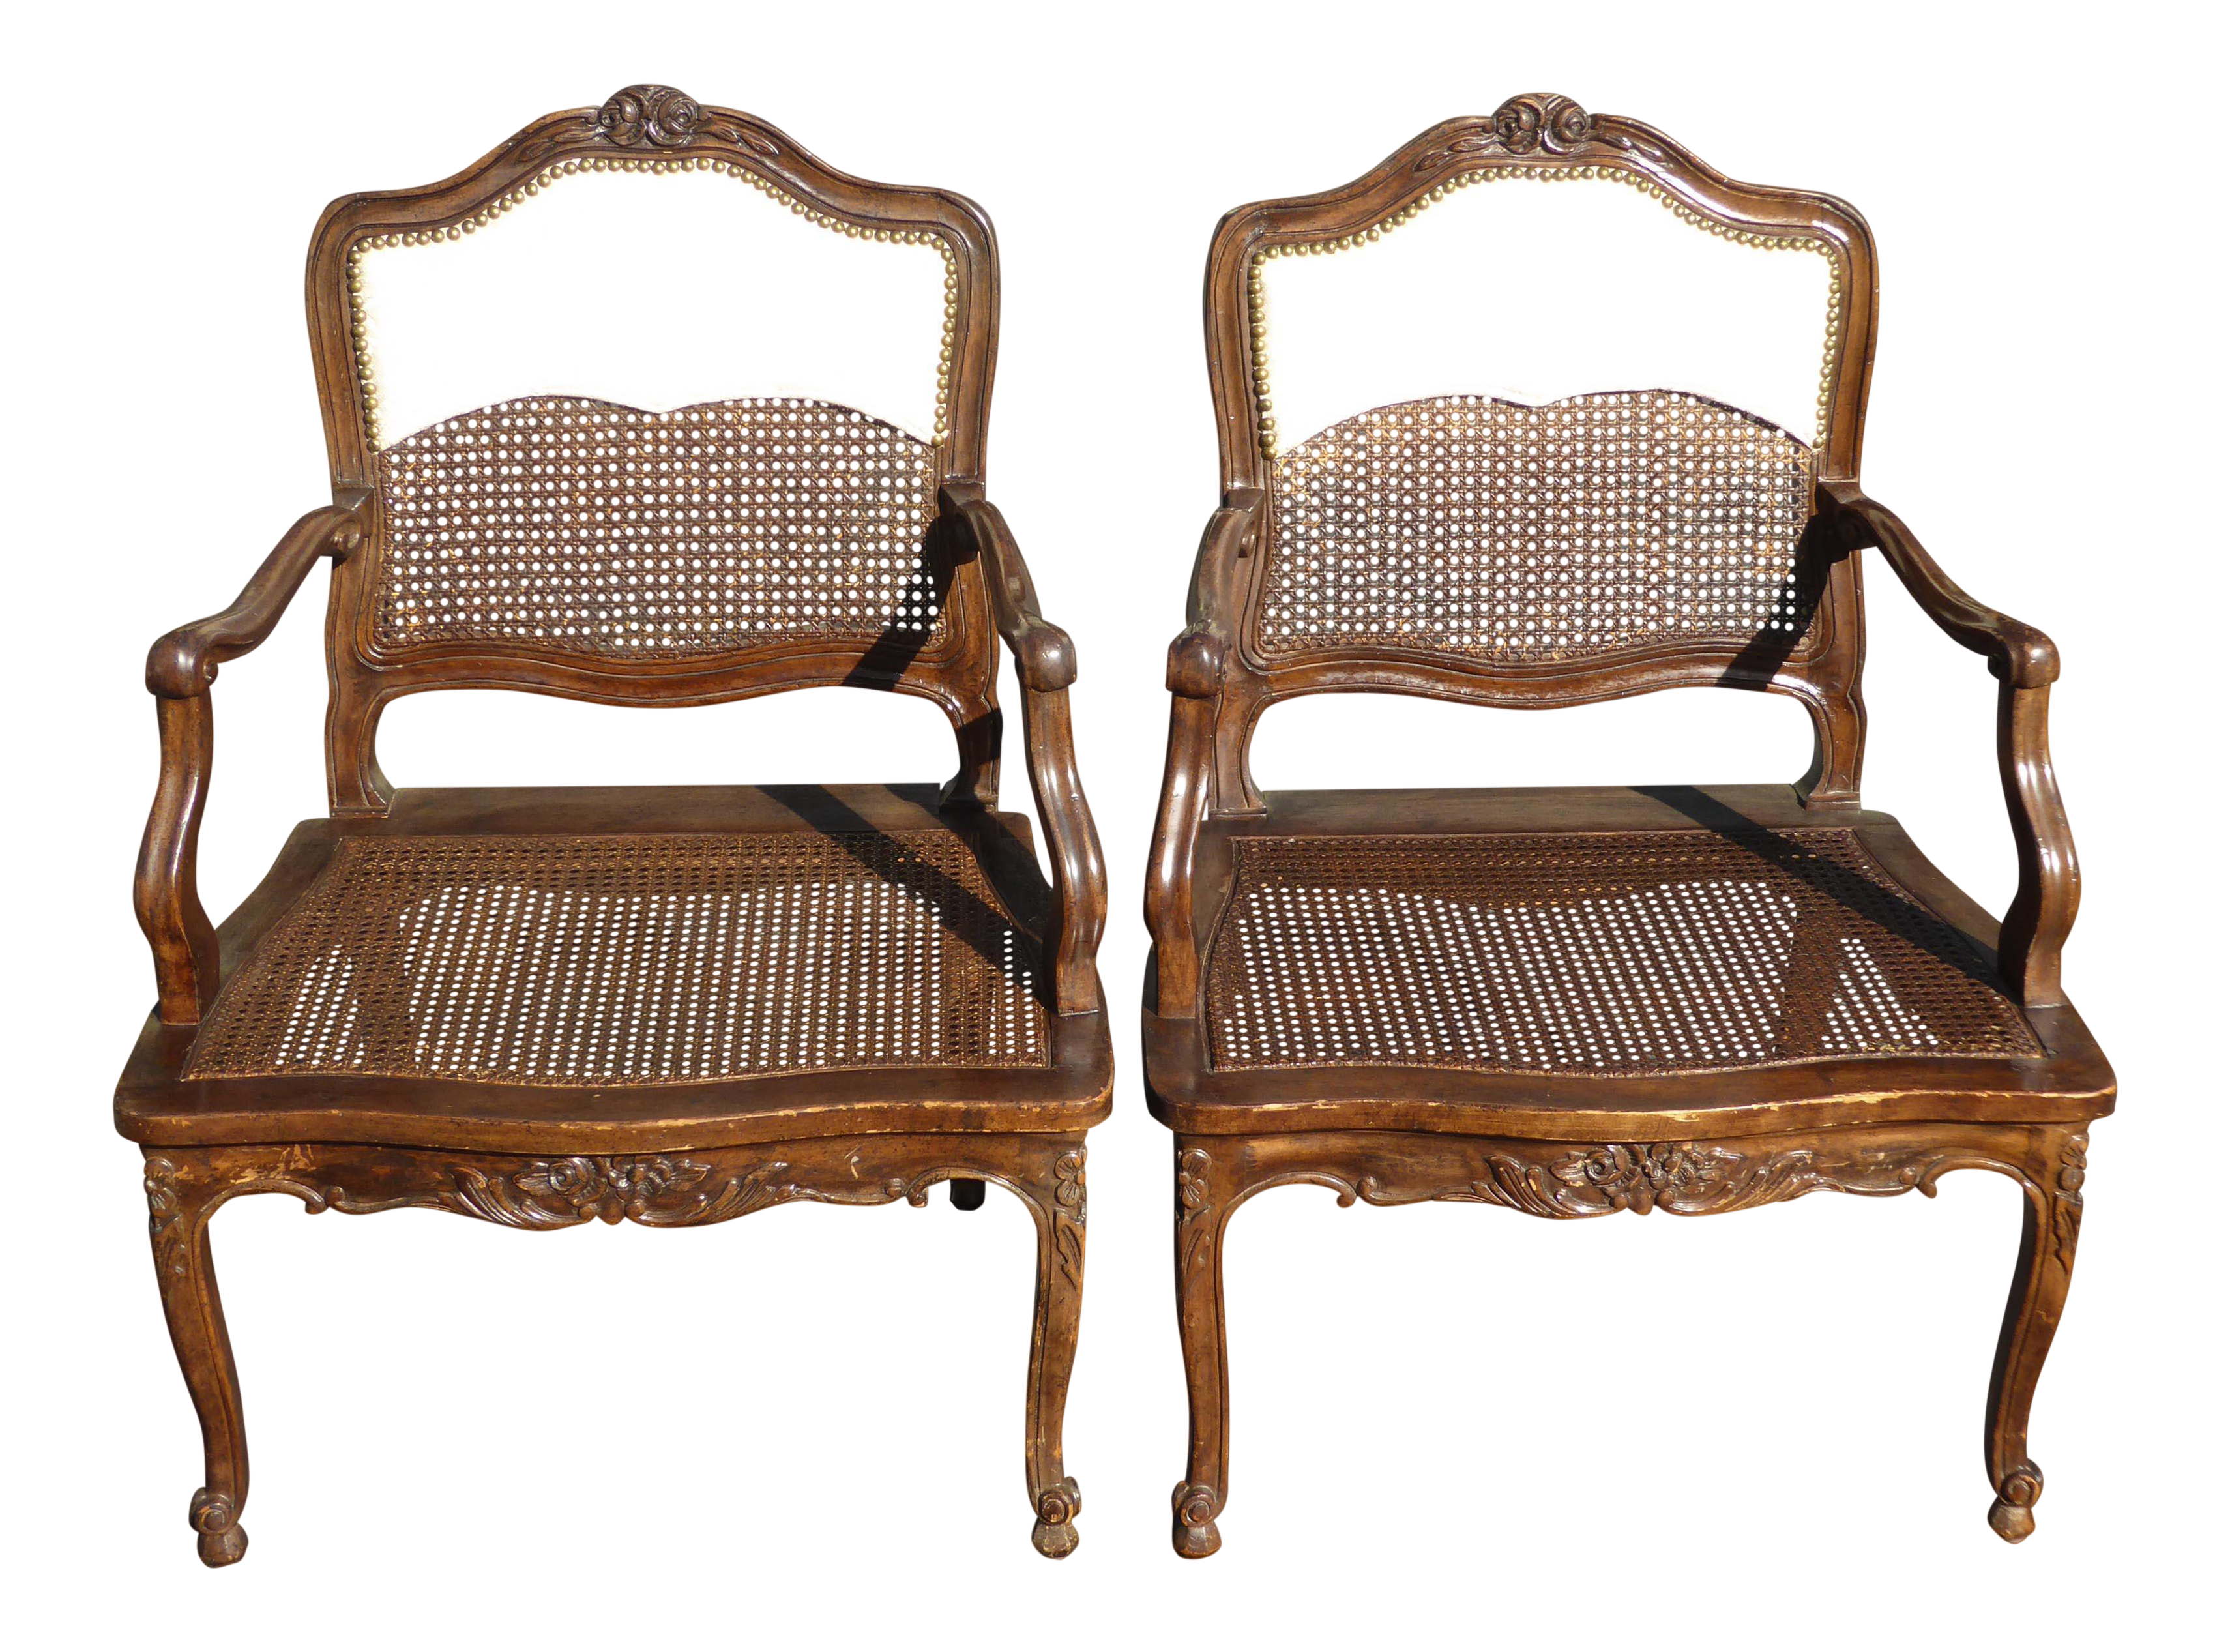 Magnificent Vintage French Country Carved Wood Cane Accent Chairs A Pair Unemploymentrelief Wooden Chair Designs For Living Room Unemploymentrelieforg